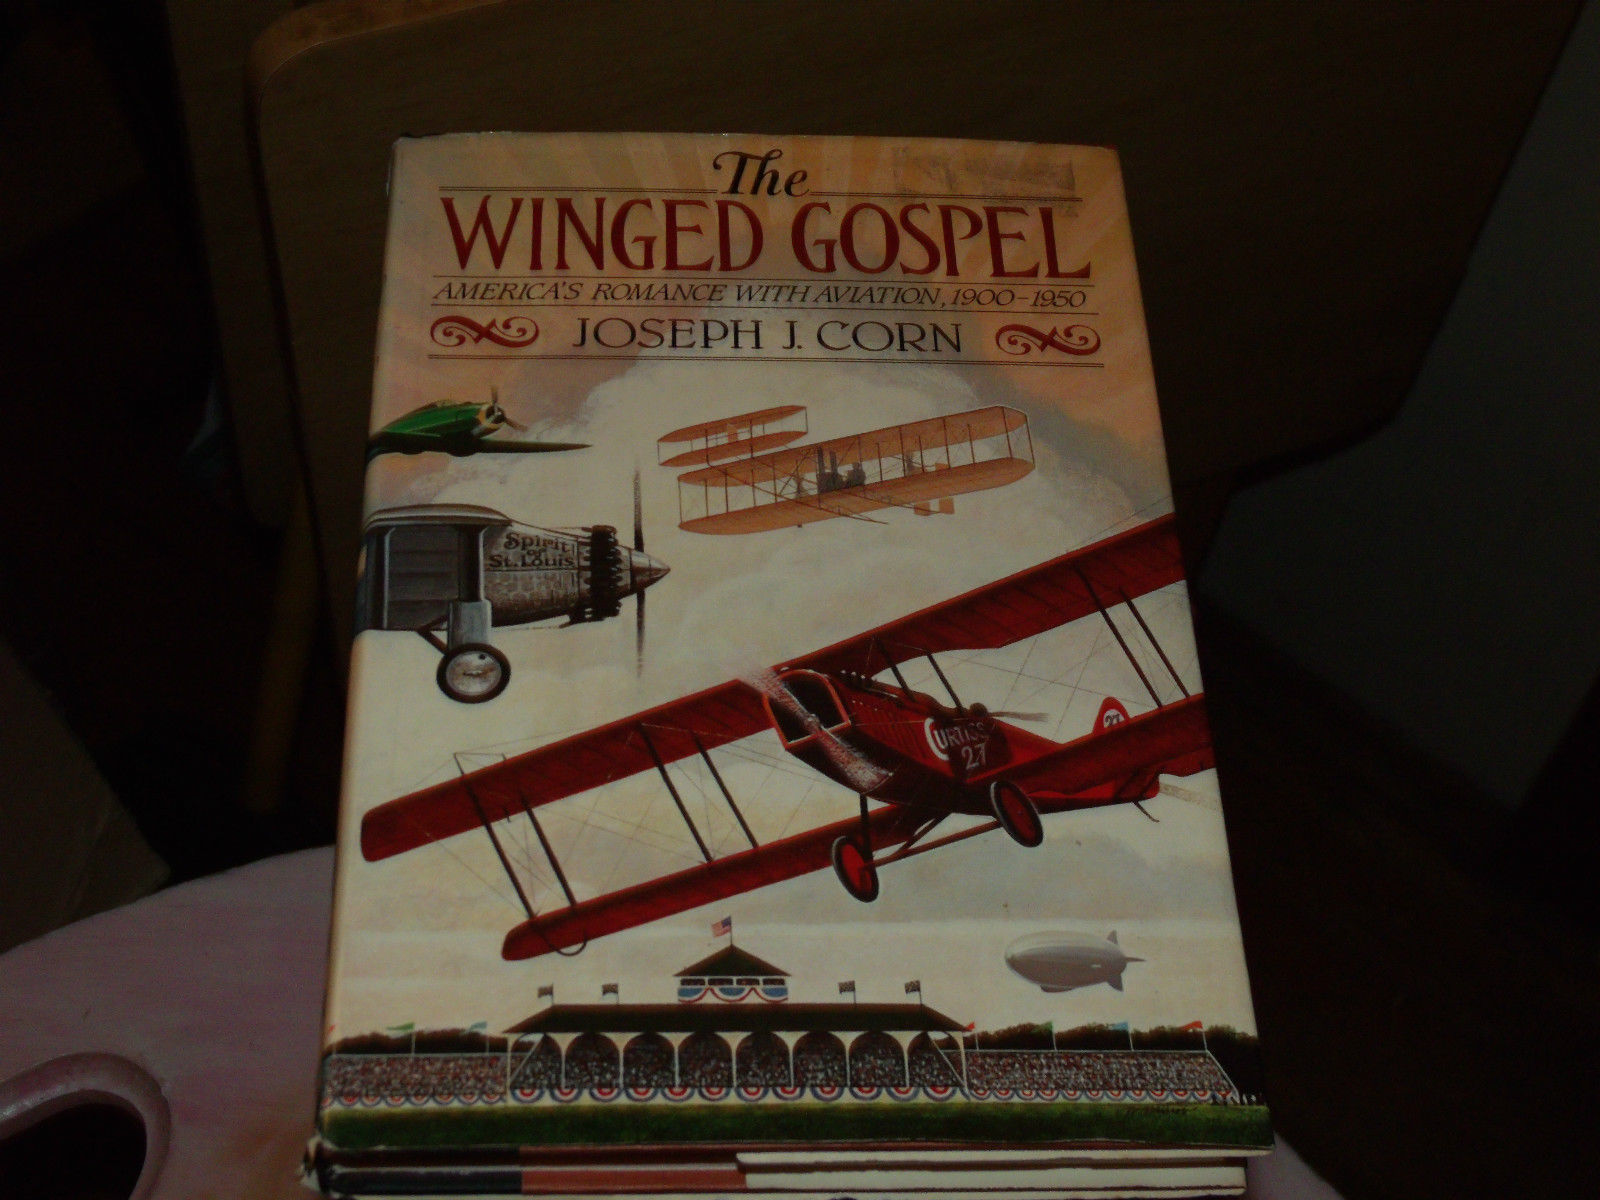 The Winged Gospel: America's Romance With Aviation, 1900-1950 by Joseph J CORN